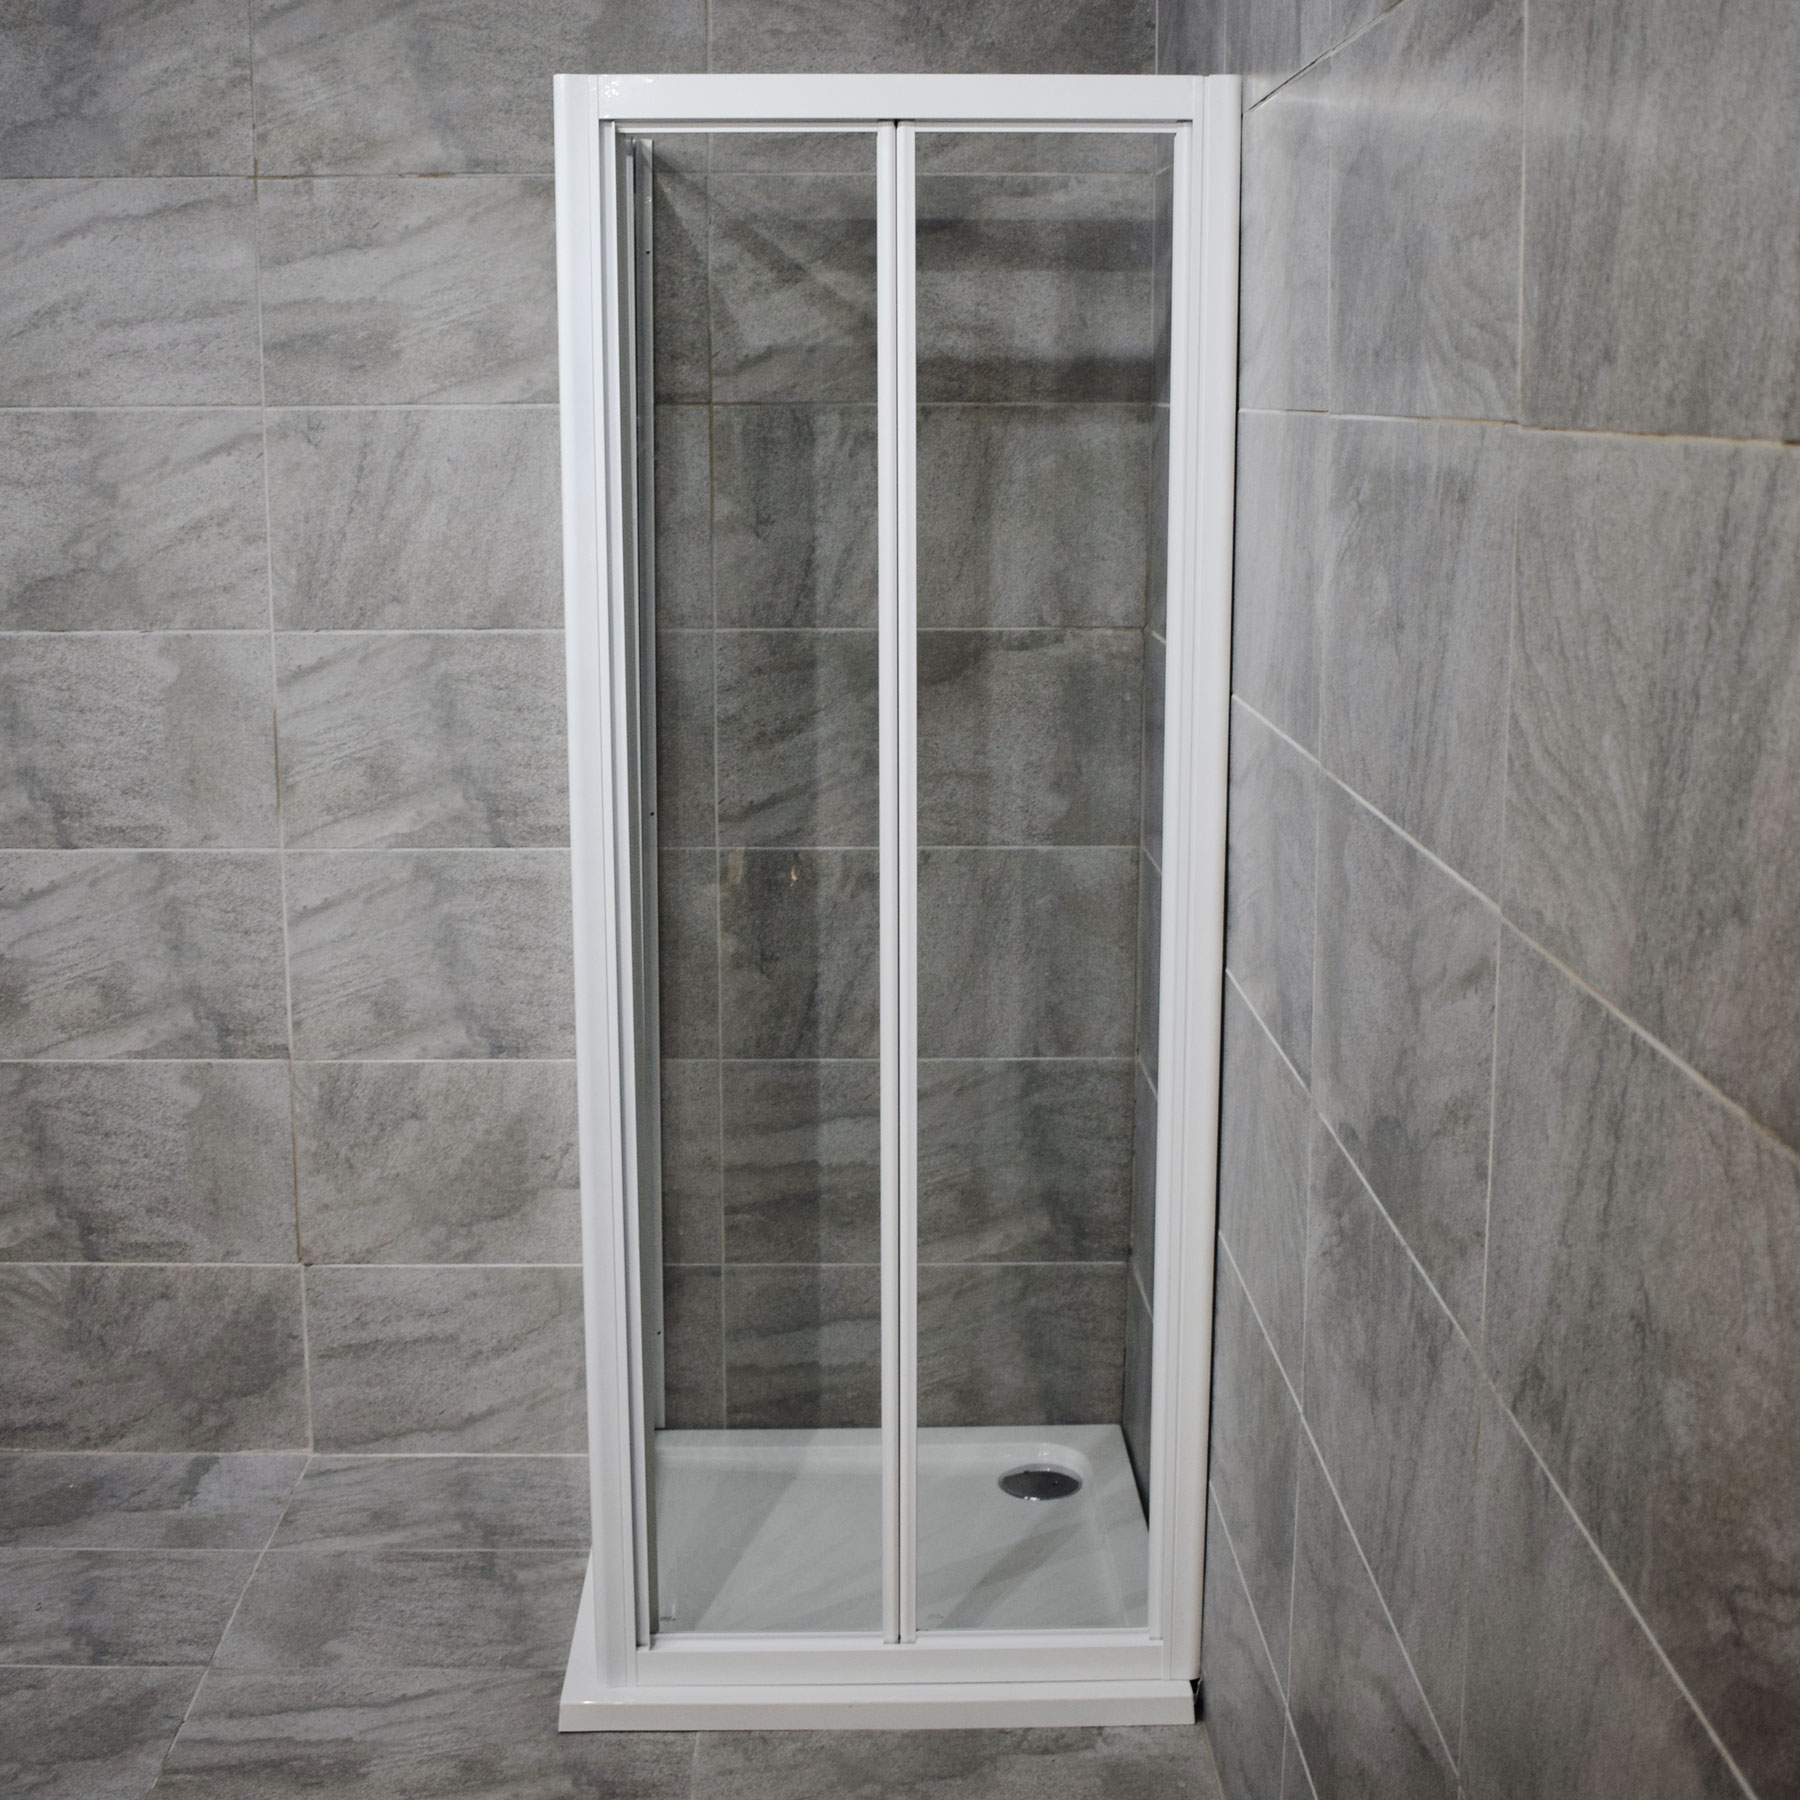 Homebrand 760mm White Bi Fold Shower Door With Side Panel Tray